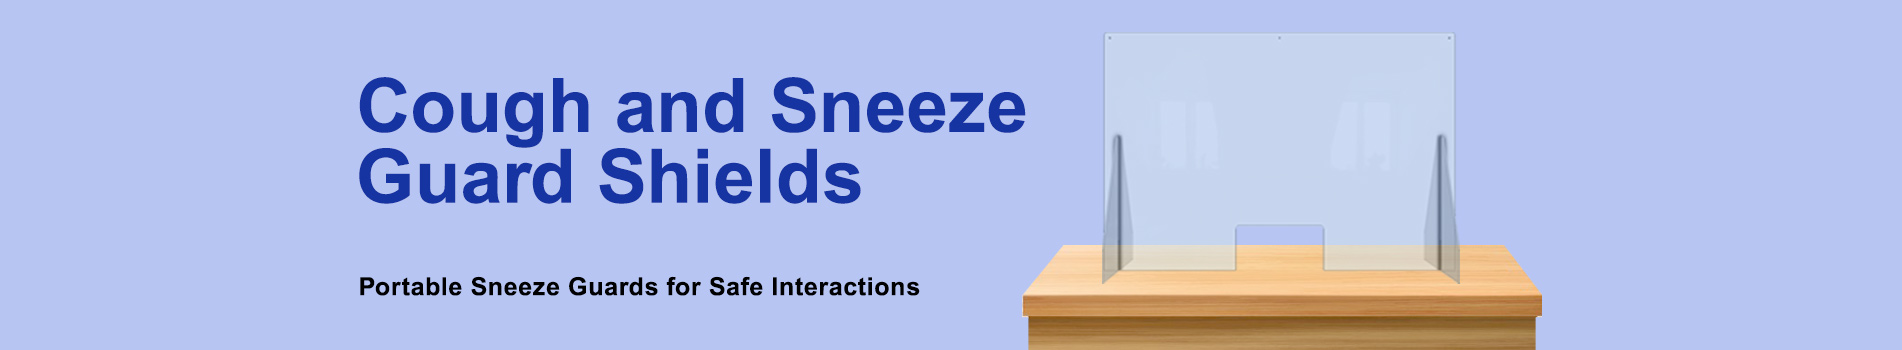 Cough and Sneeze Guard Shields